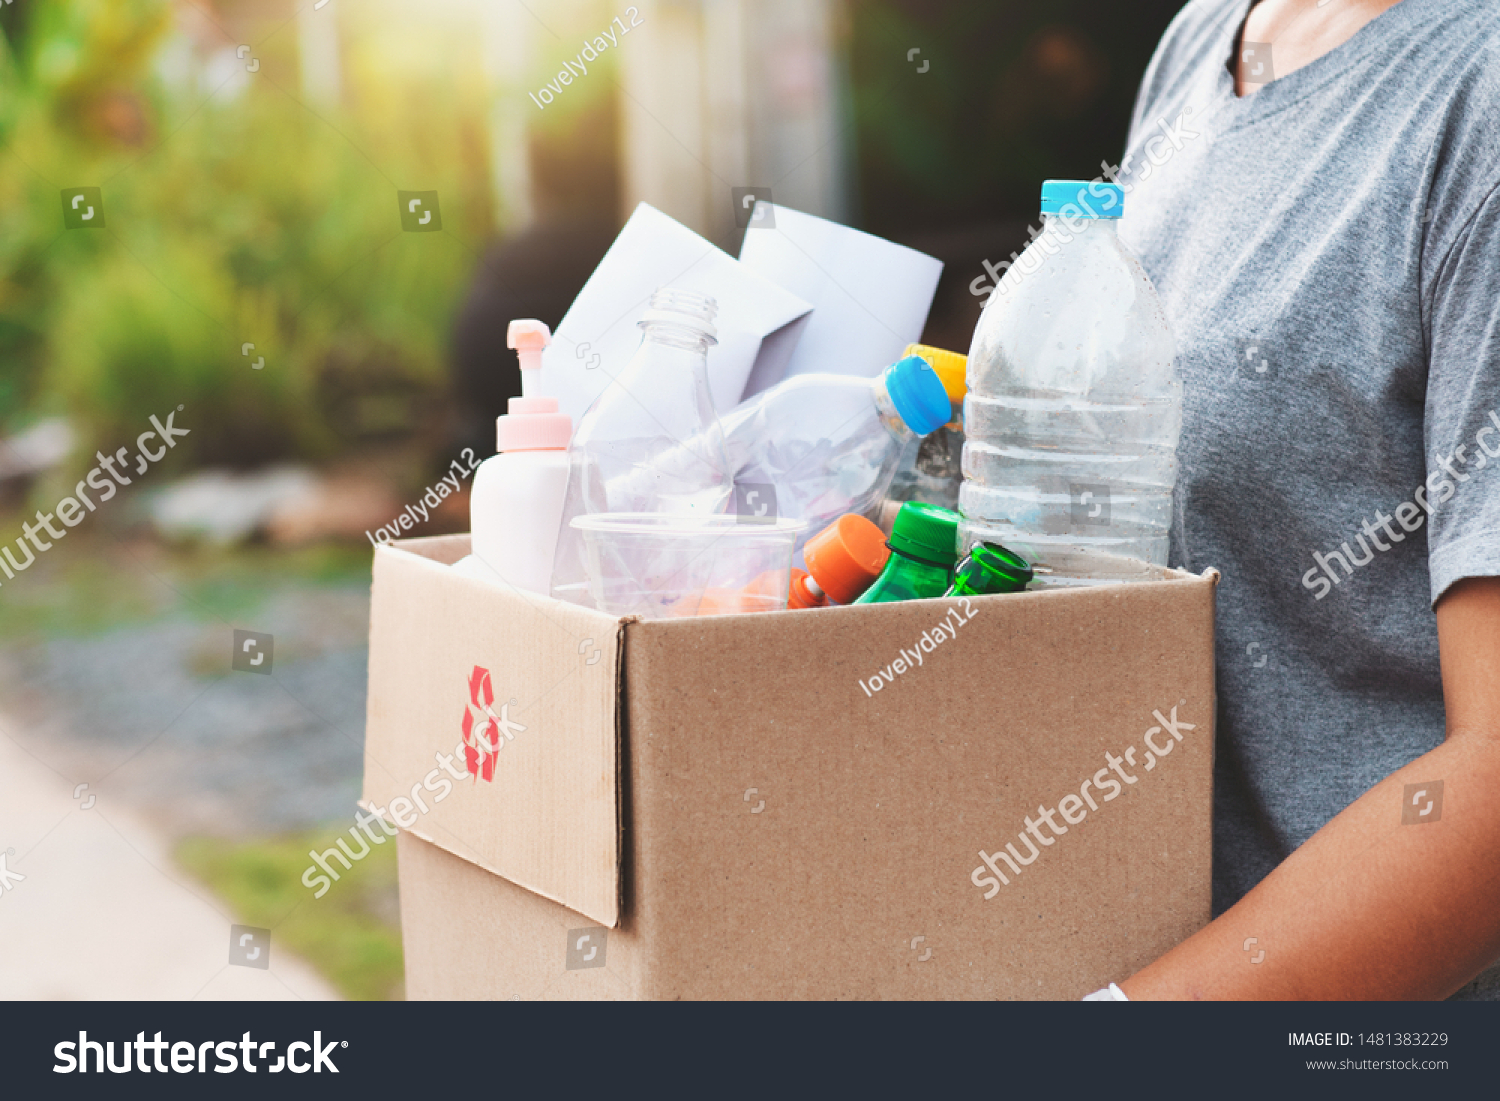 woman hand holdging box garbage for recycle #1481383229